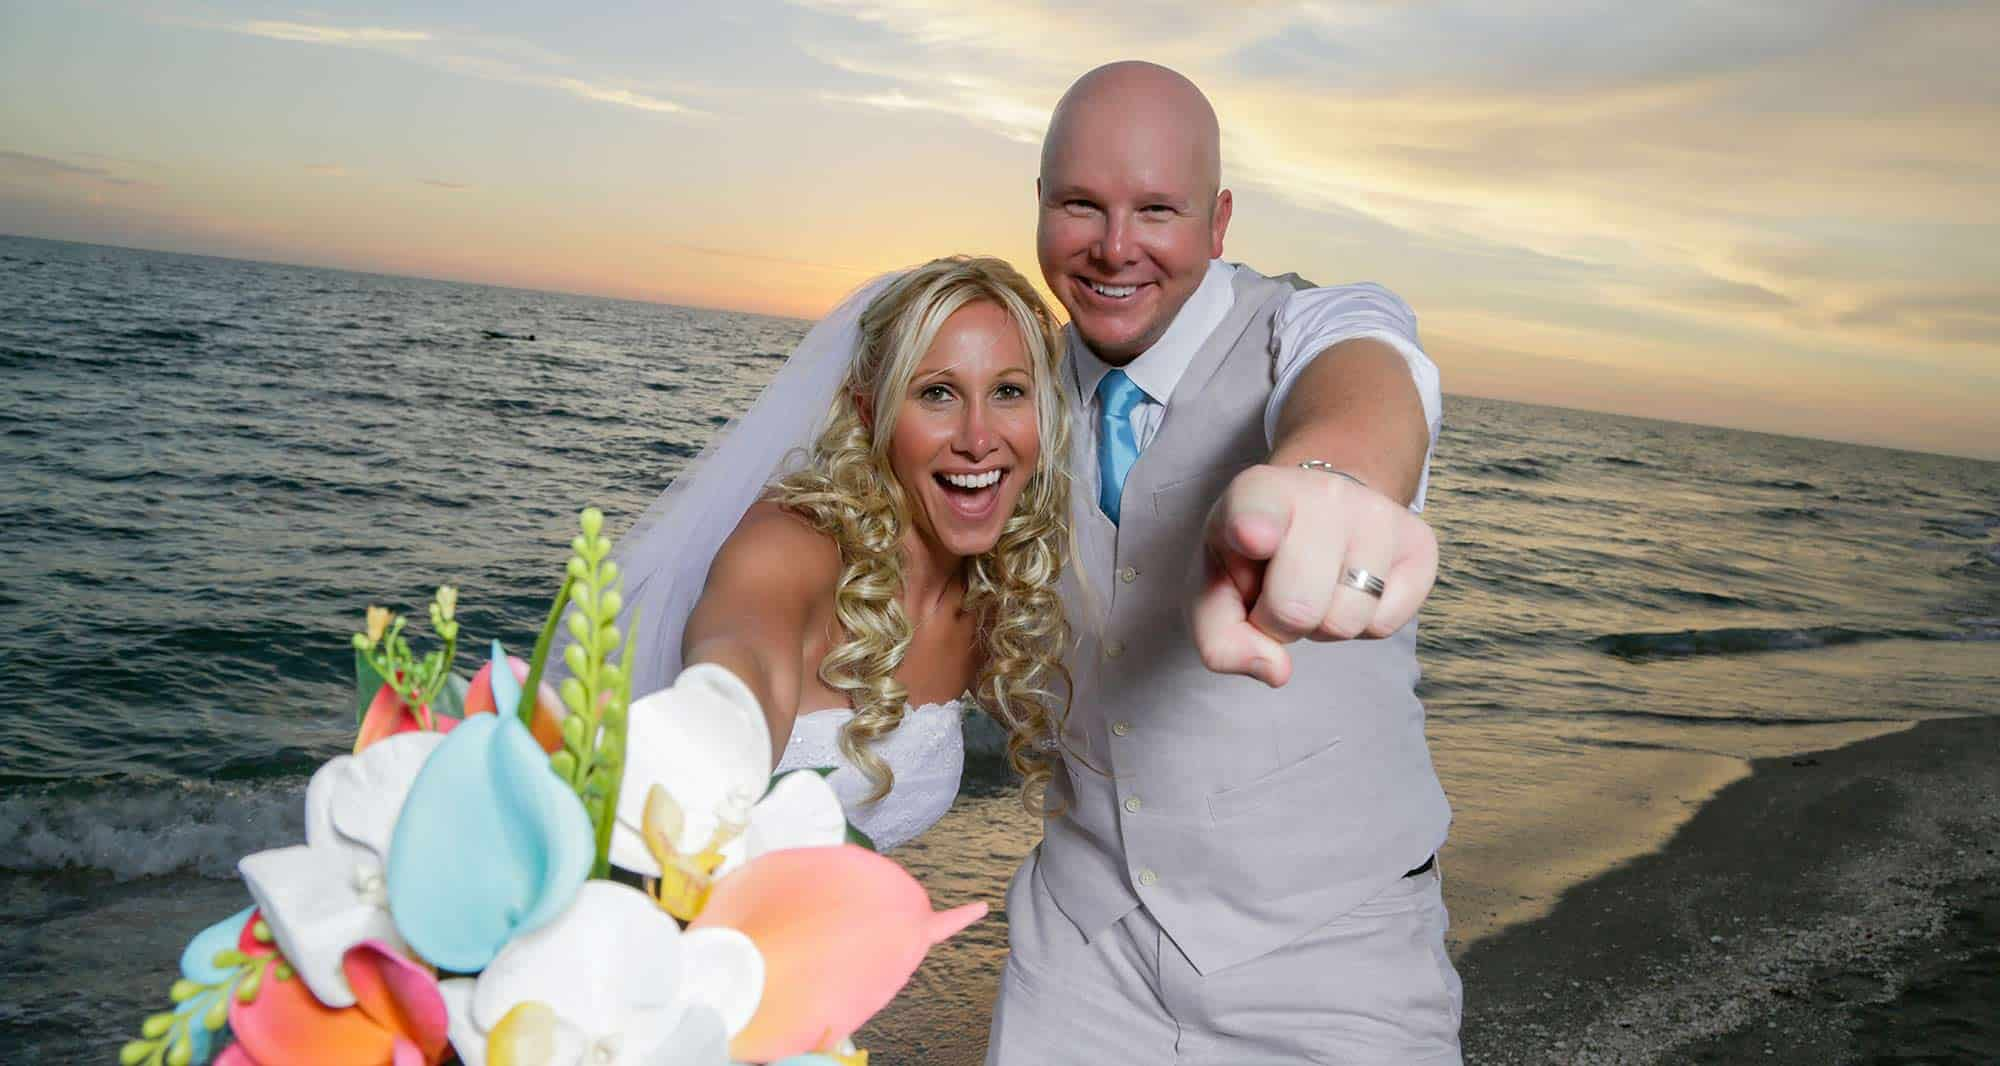 Rumshopryan beach wedding